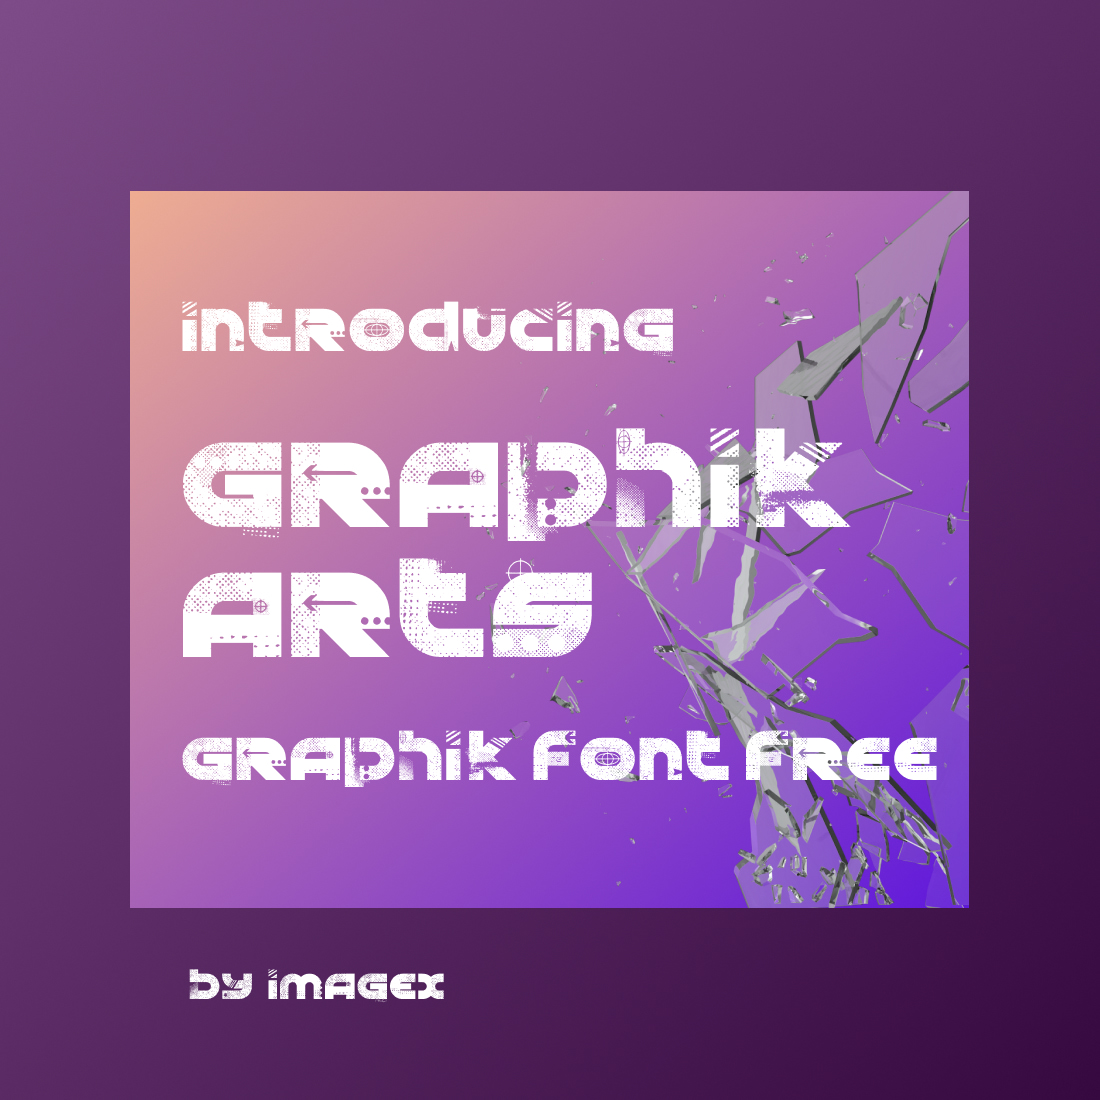 Main cover preview for graphik font free by MasterBundles.